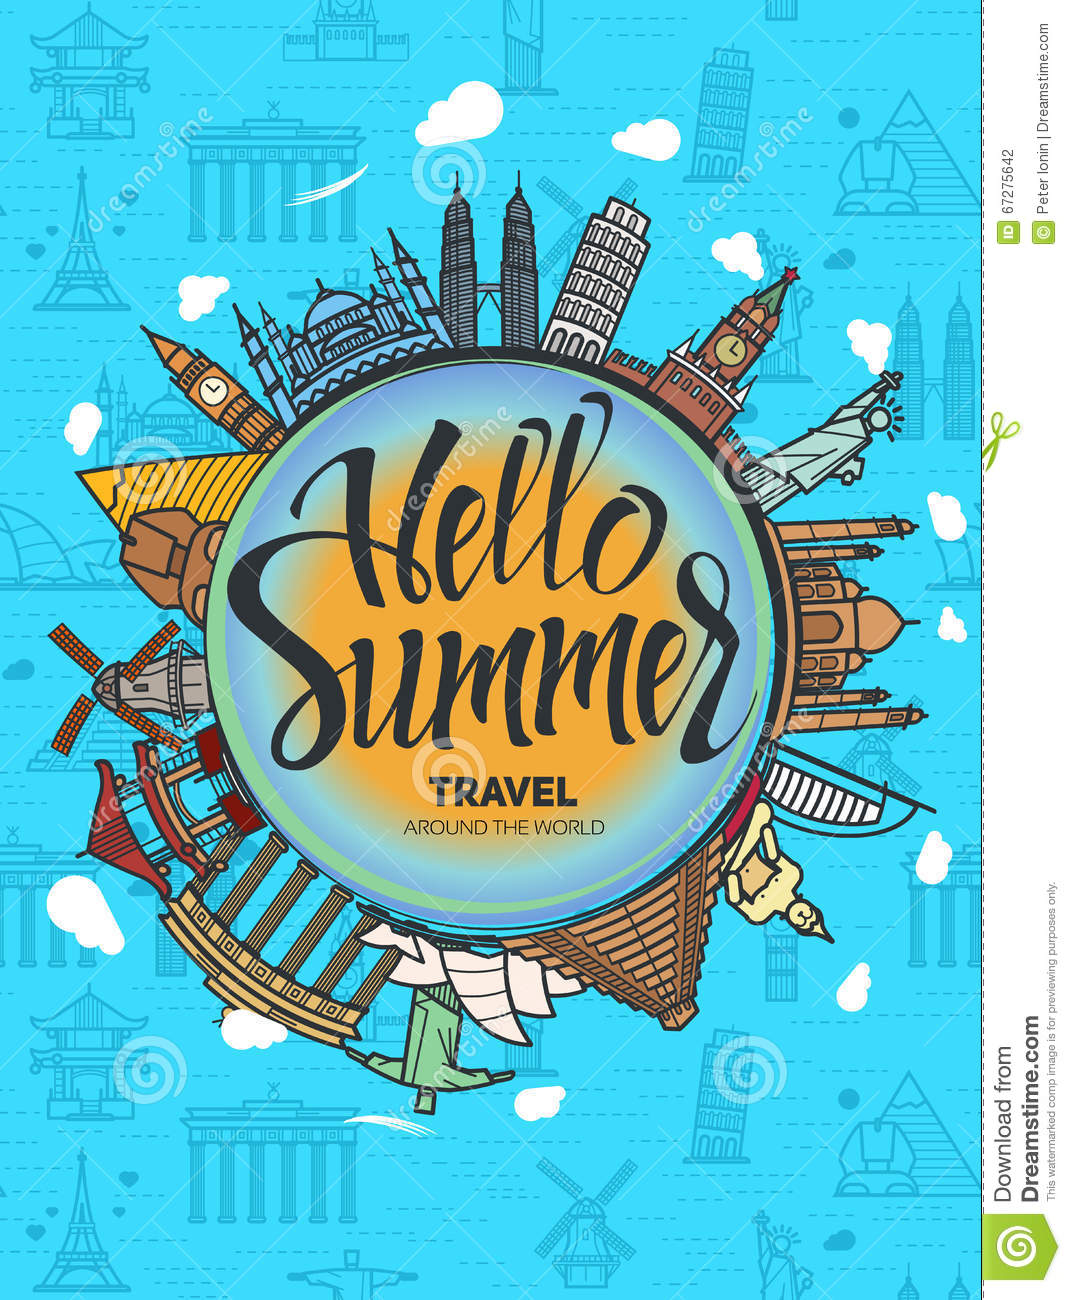 topic tourism Tourism: tourism, the act and process of spending time away from home in pursuit of recreation, relaxation, and pleasure, while making use of the commercial provision of services it is a product of modern social arrangements, beginning in western europe in the 17th century, although it has antecedents in classical antiquity.